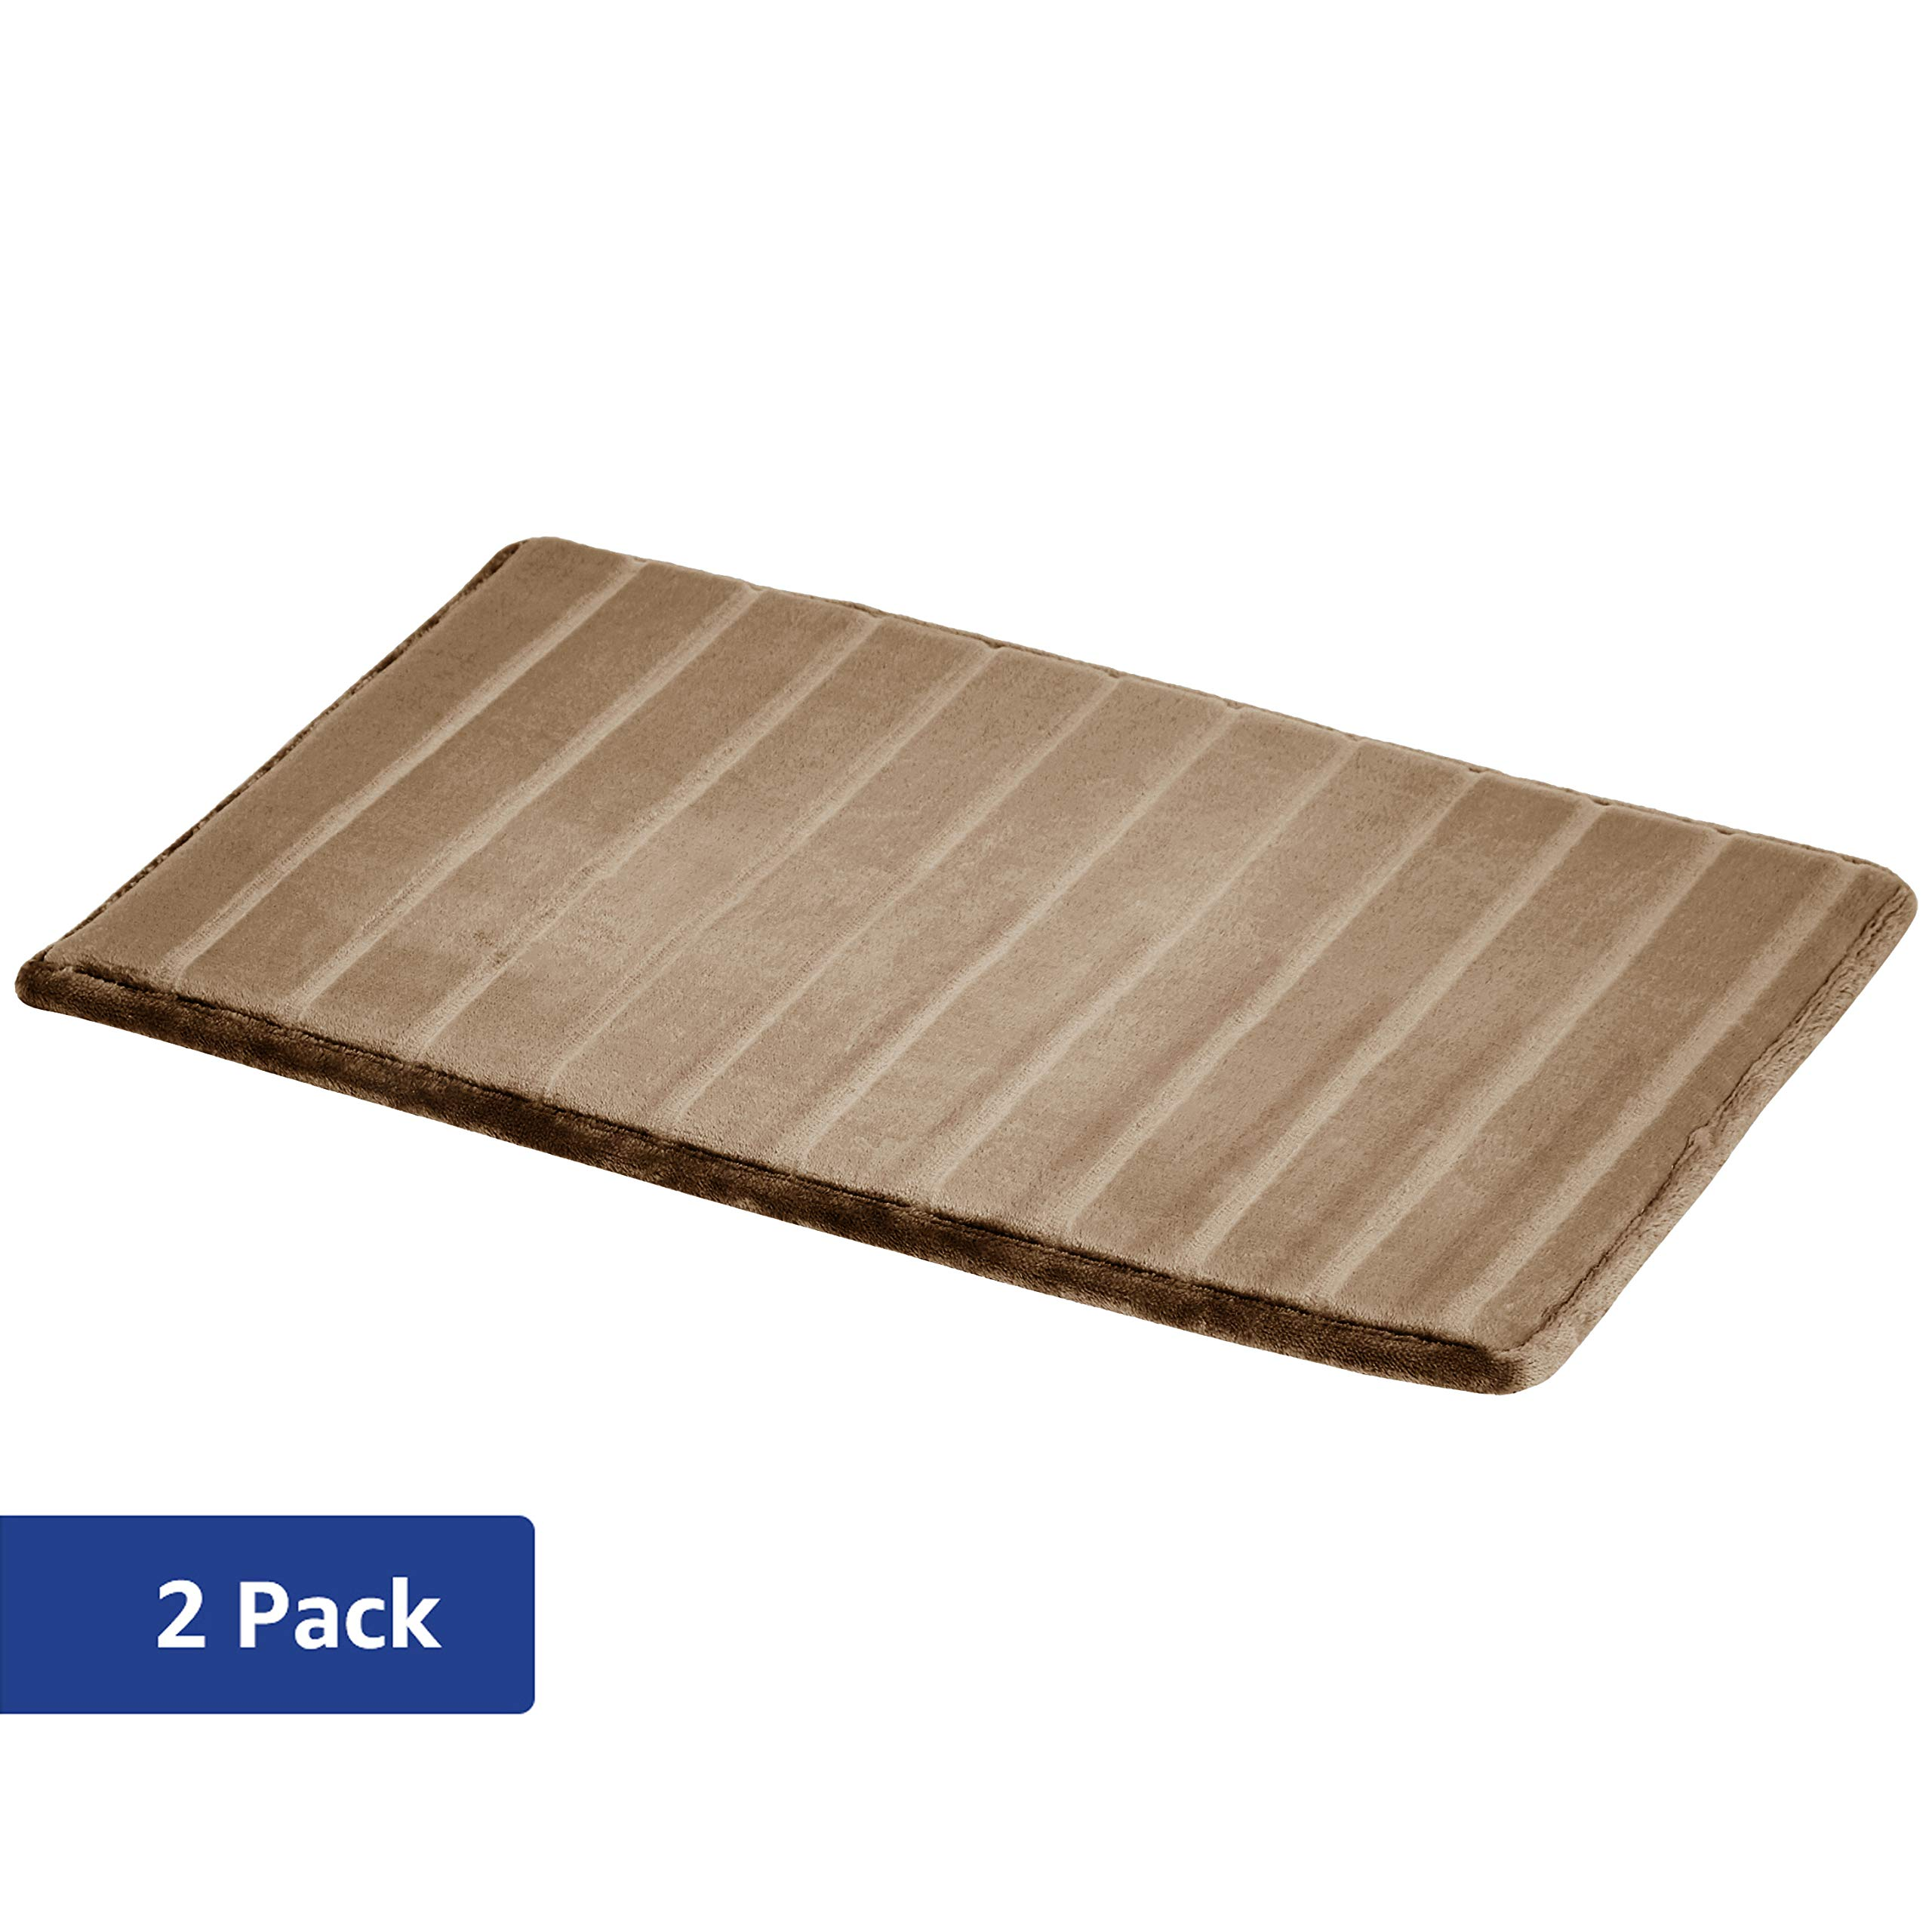 AmazonBasics Striped Memory Foam Bath Mat - Tan, Small, 2-Pack